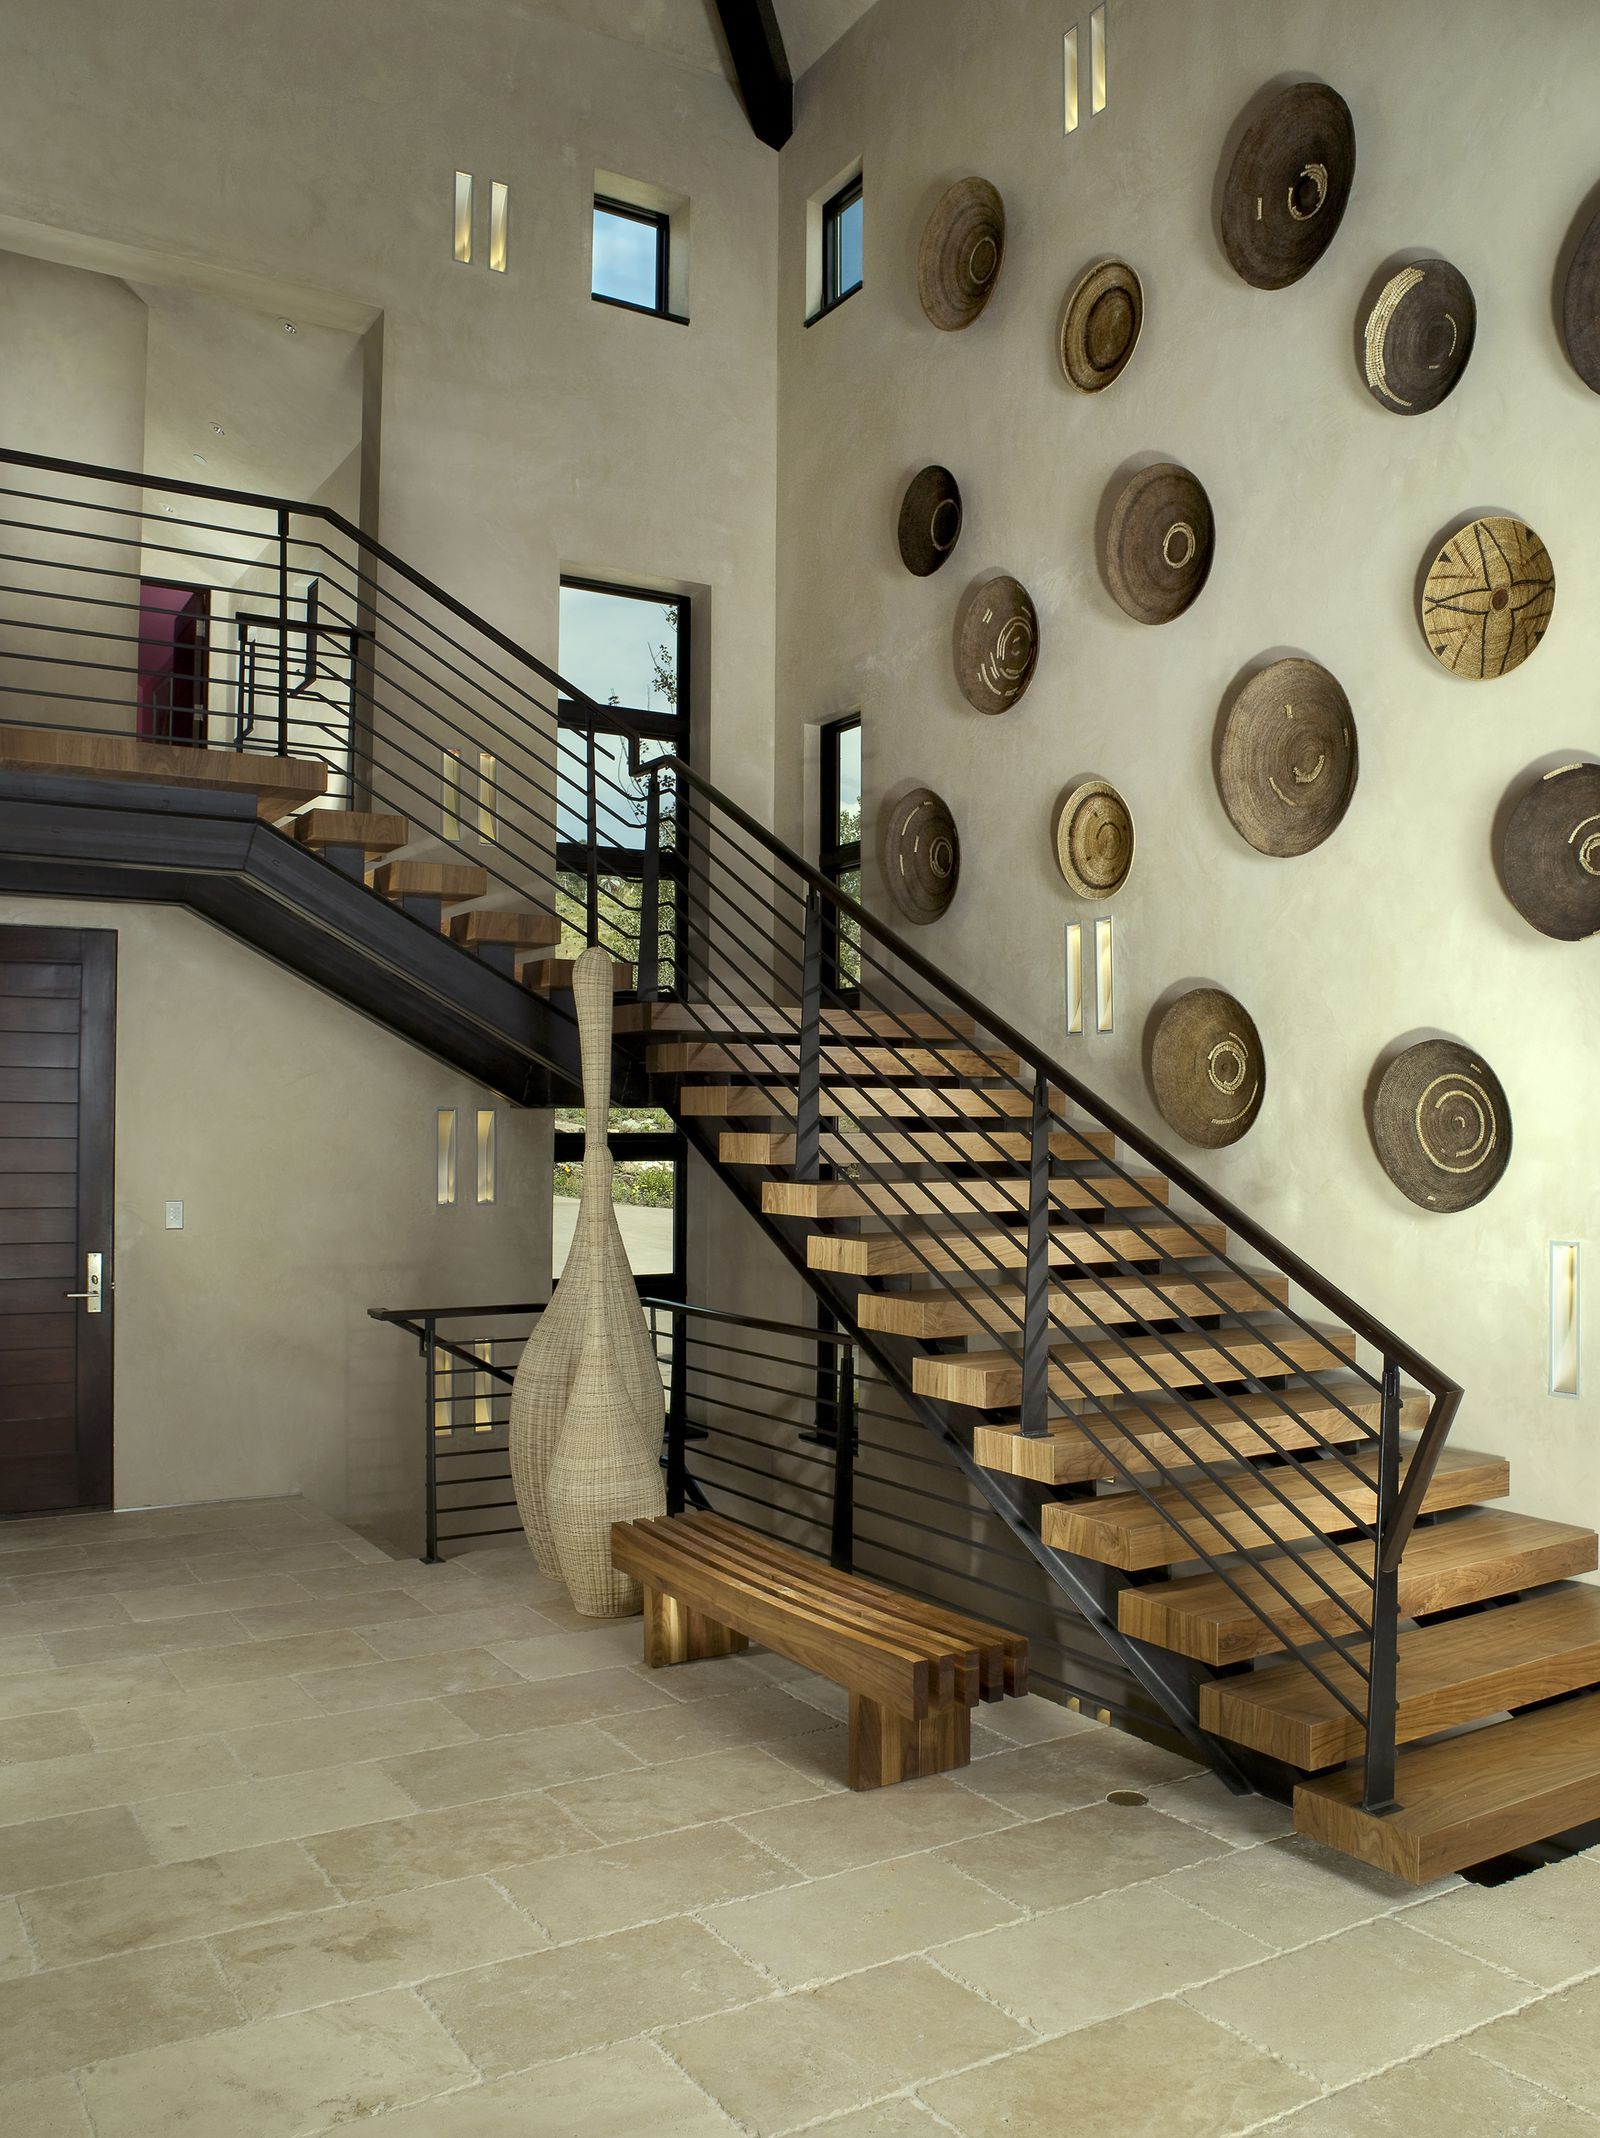 27 Stylish Staircase Decorating Ideas | Staircase wall ... on Creative Staircase Wall Decorating Ideas  id=83728